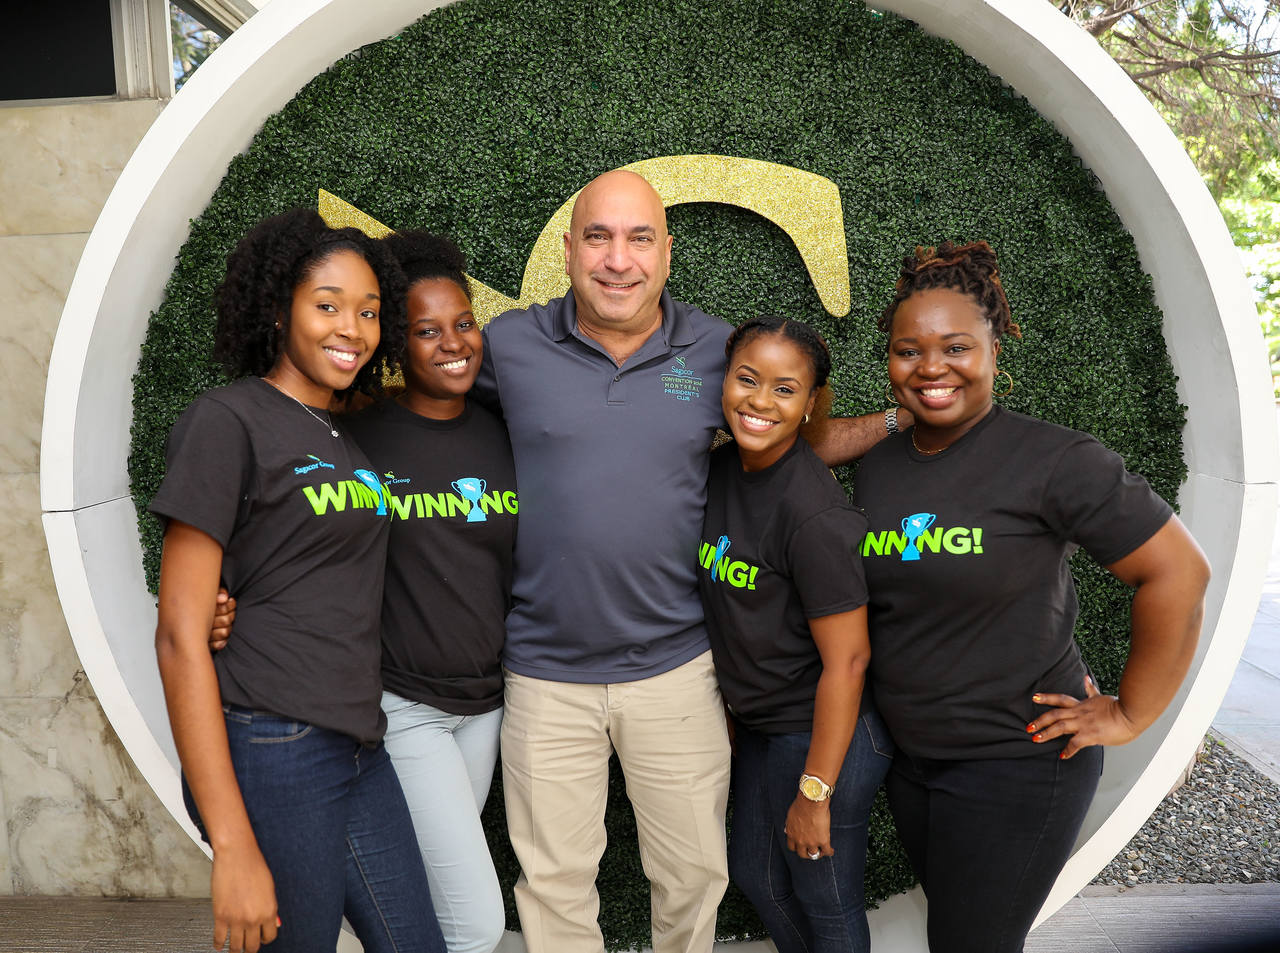 Sagicor Group Jamaica President and CEO Christopher Zacca poses for a photo op with members of the Sagicor tram.